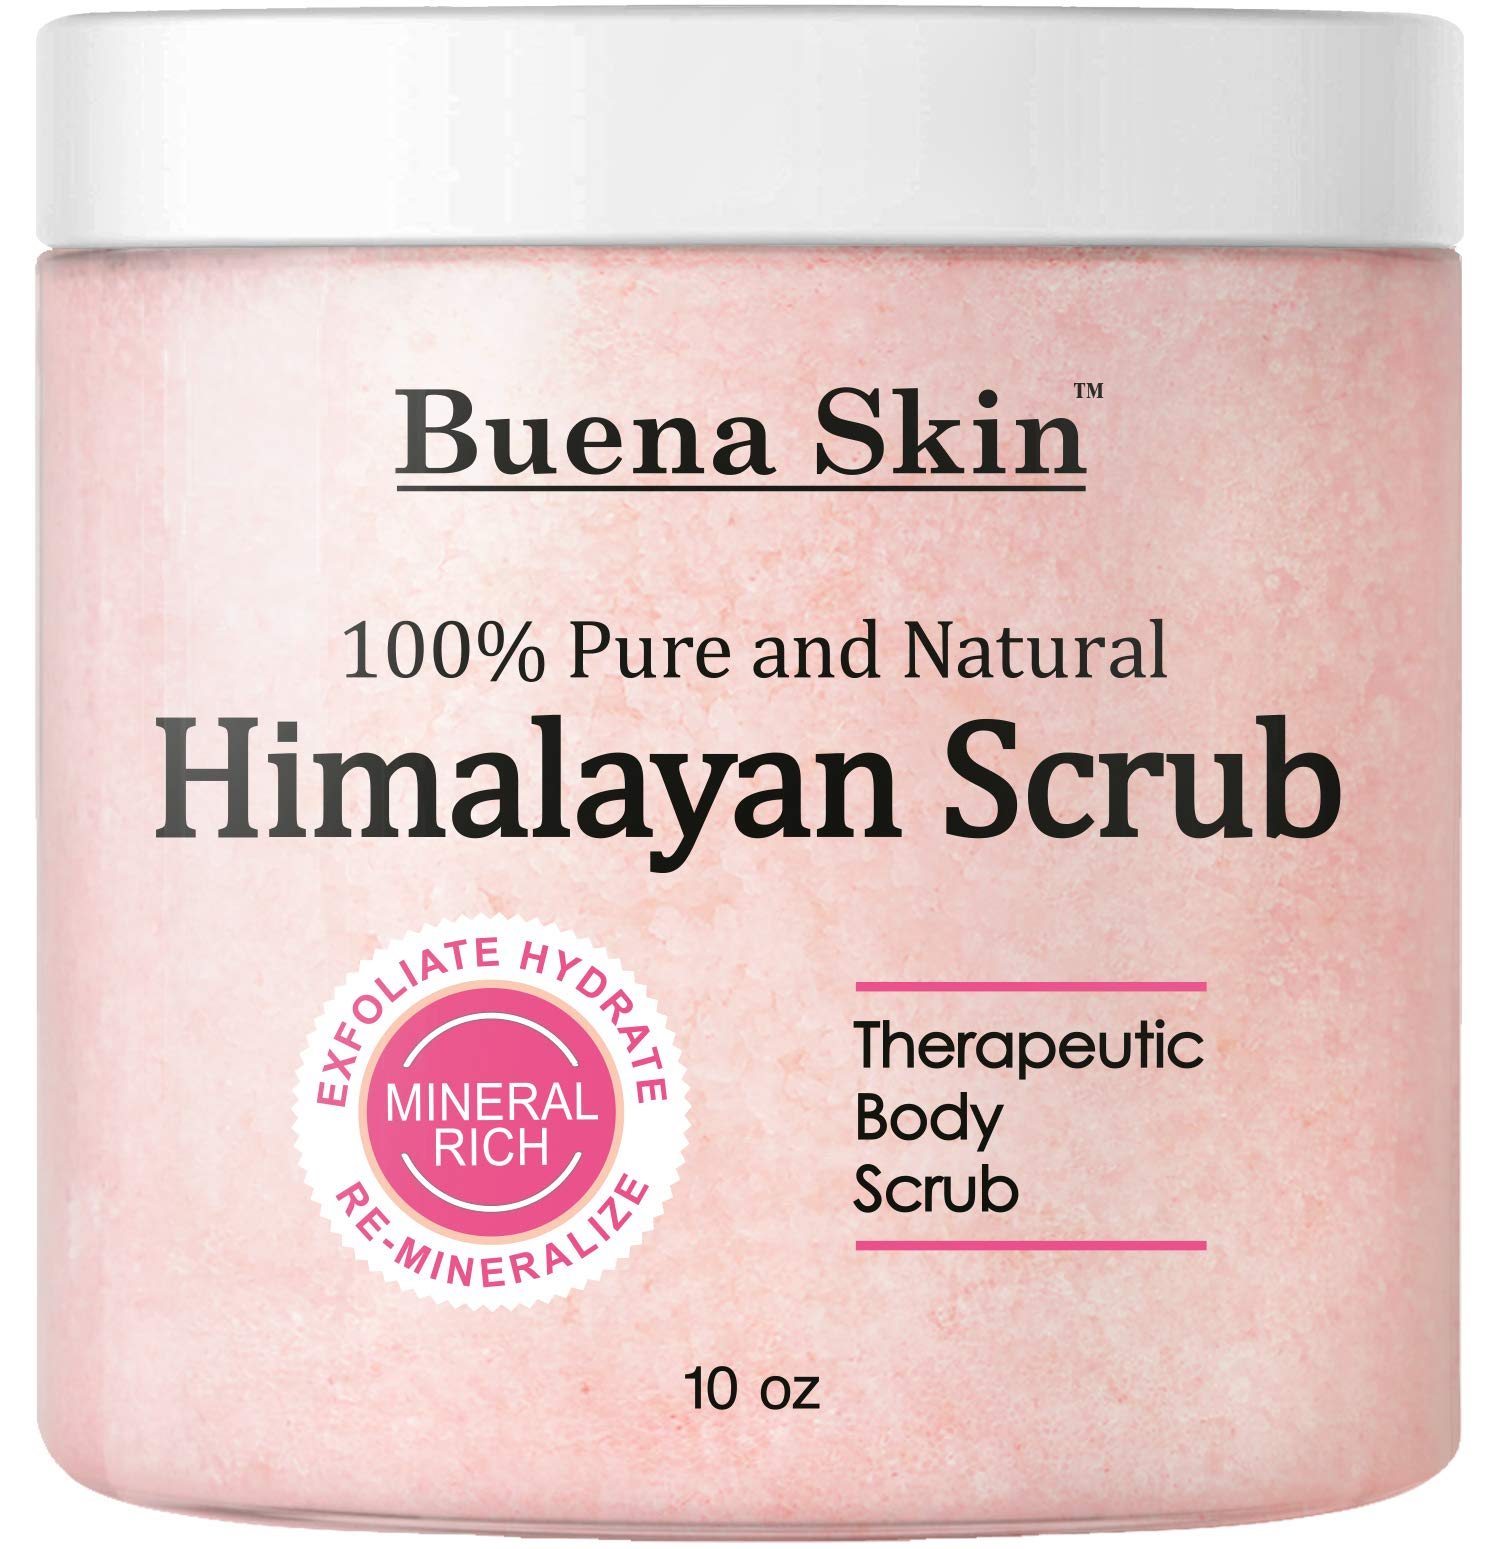 Himalayan Pure Salt Body Scrub with Lychee Oil | All Natural Scrub to Exfoliate & Moisturize Skin, 10 Ounce Buena Skin by Buena Skin